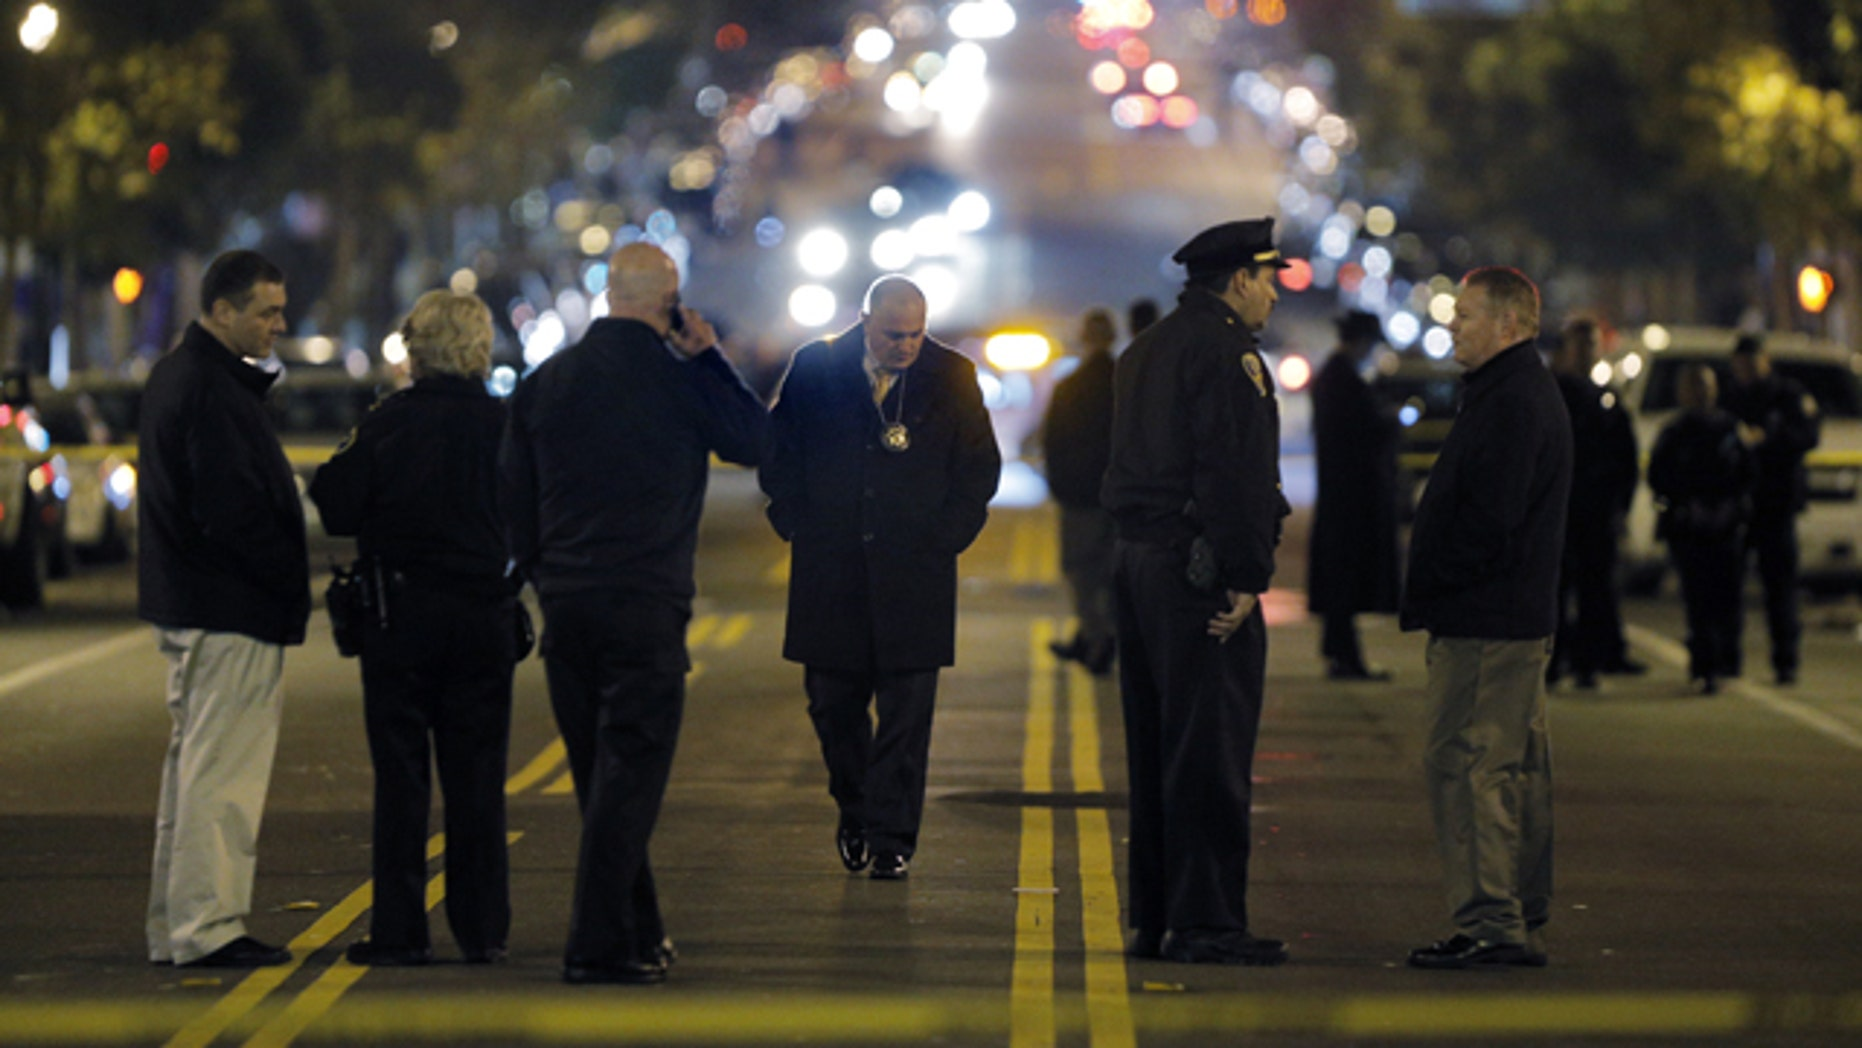 Jan: 4, 2015: Police investigators search for evidence after an officer-involved shooting at the San Francisco Police Mission Station in San Francisco. Officers shot and killed a man who brandished what appeared to be a handgun but was actually an air gun after they told him to leave a restricted parking lot. (AP Photo/San Francisco Chronicle, Carlos Avila Gonzalez)